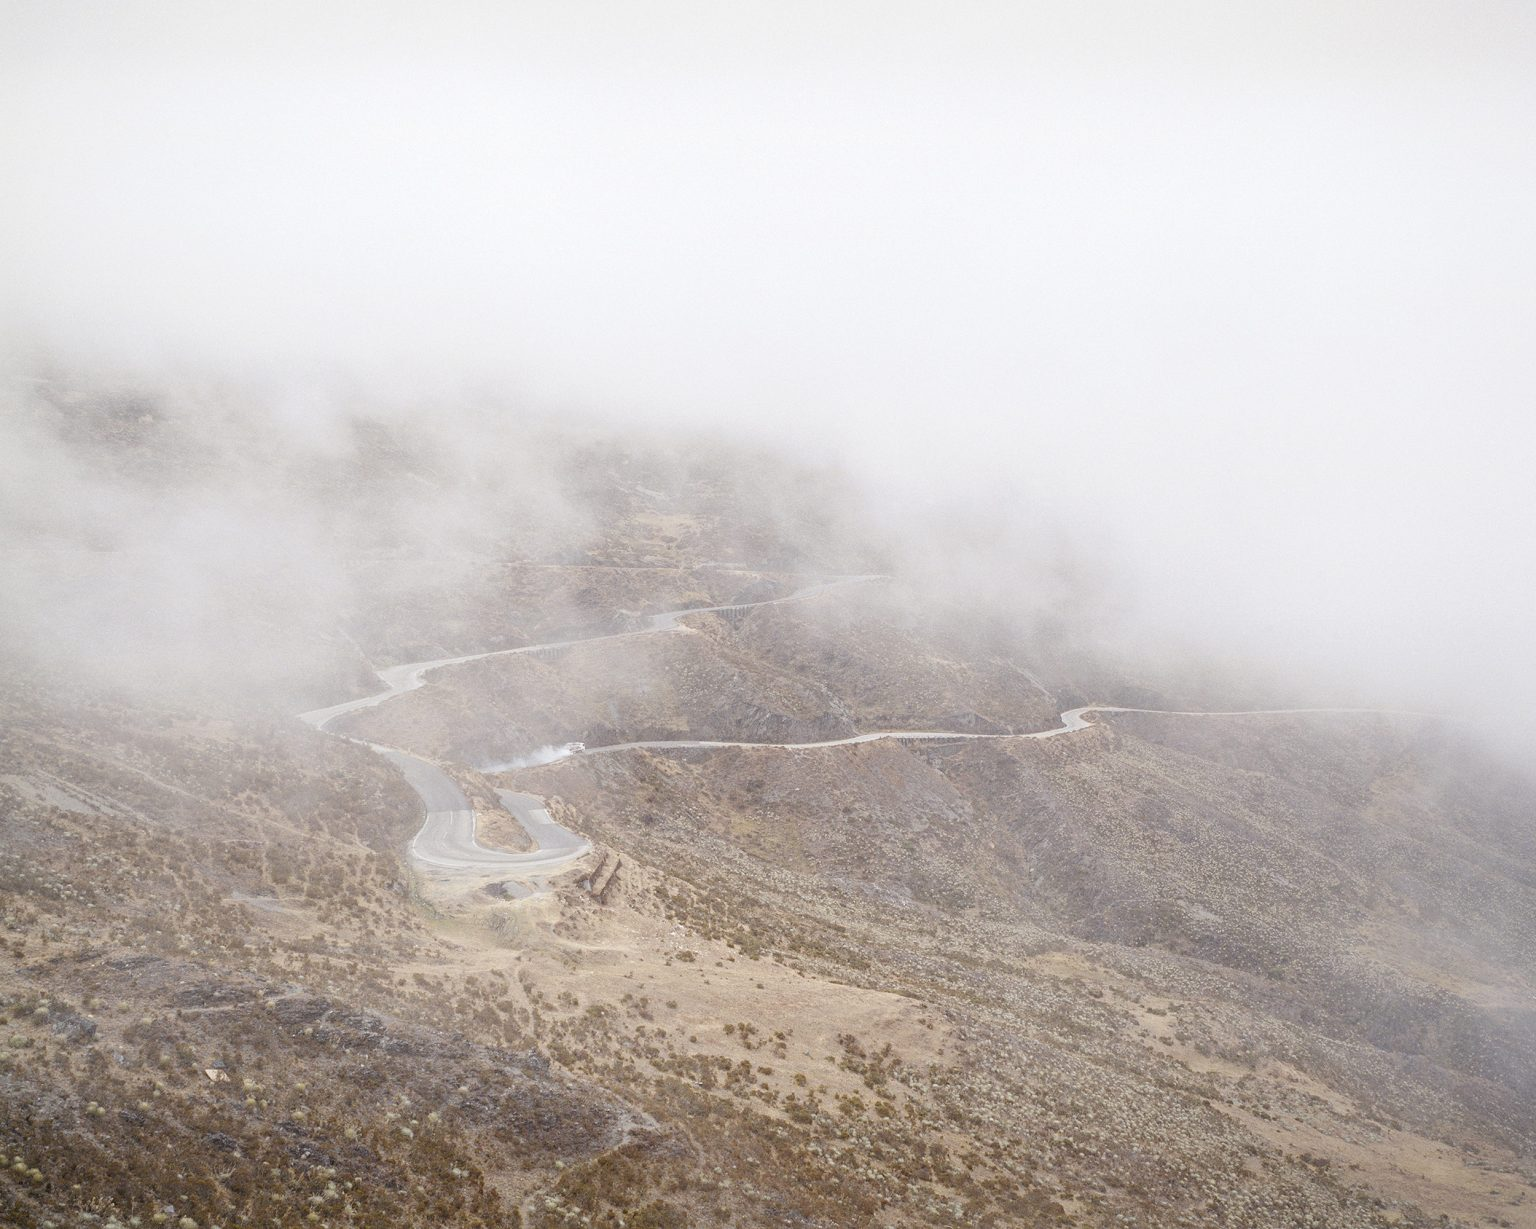 The street that pass trought the Pico de l'aguila, one of the highest montain near Merida.